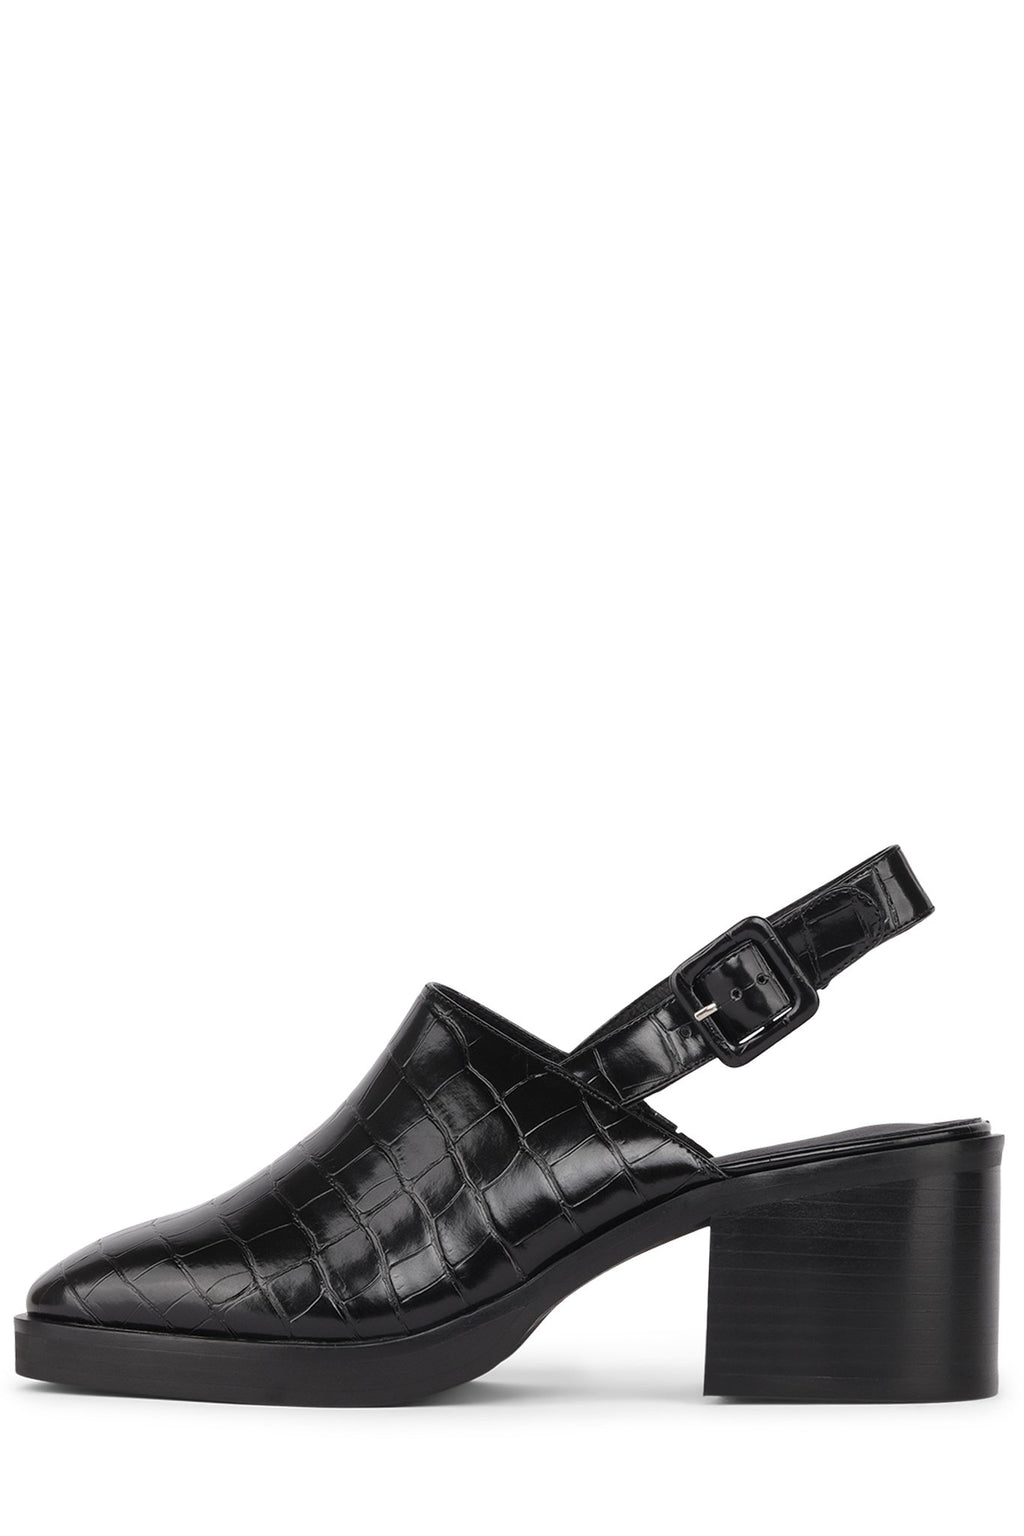 FRASER-HI Heeled Mule Jeffrey Campbell Black Croco 6